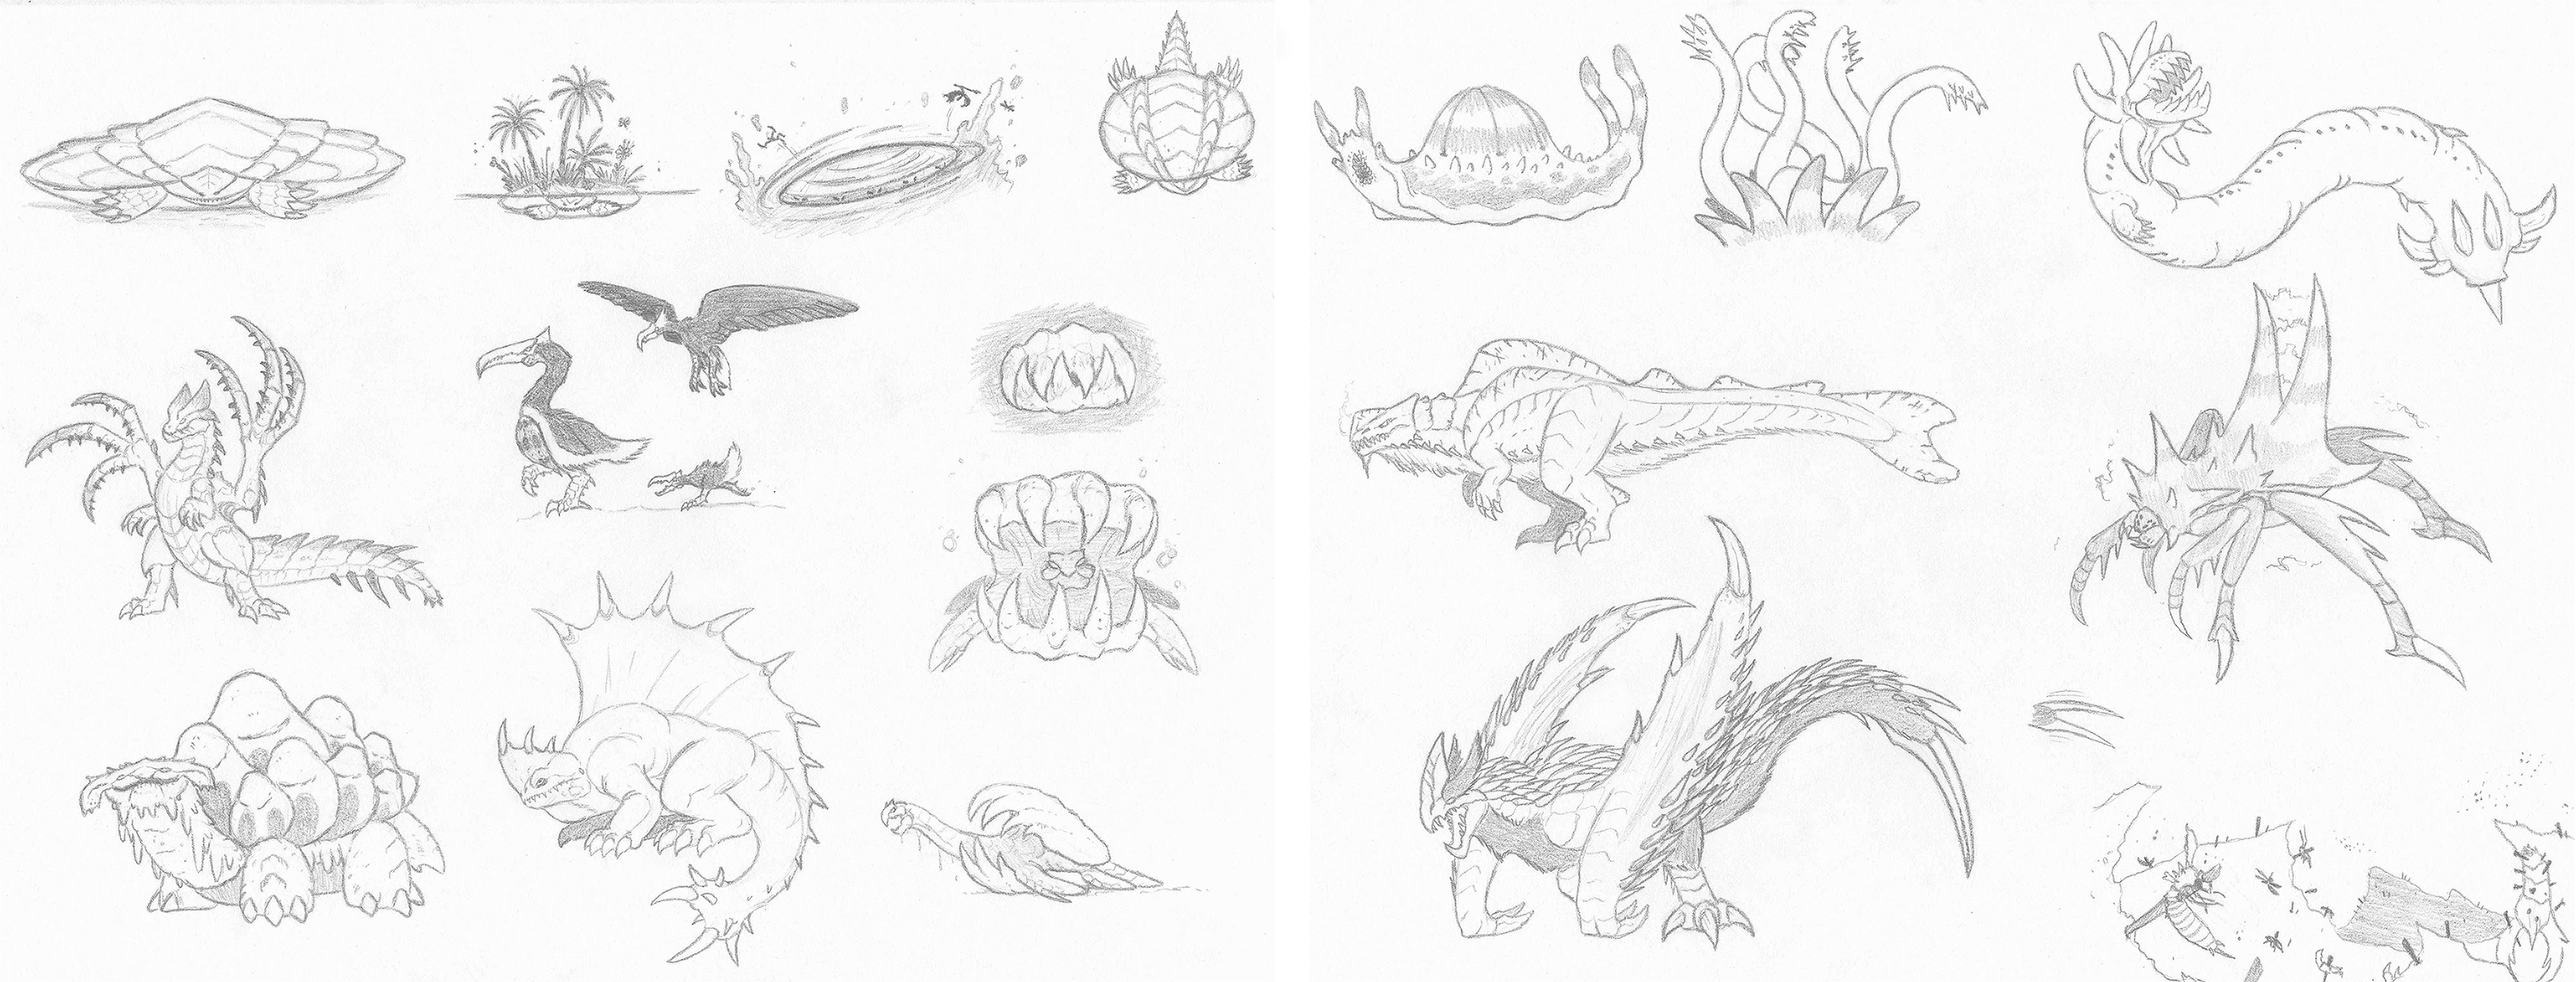 Monster Hunter Concepts: Ad Infinitum by DinoHunter2